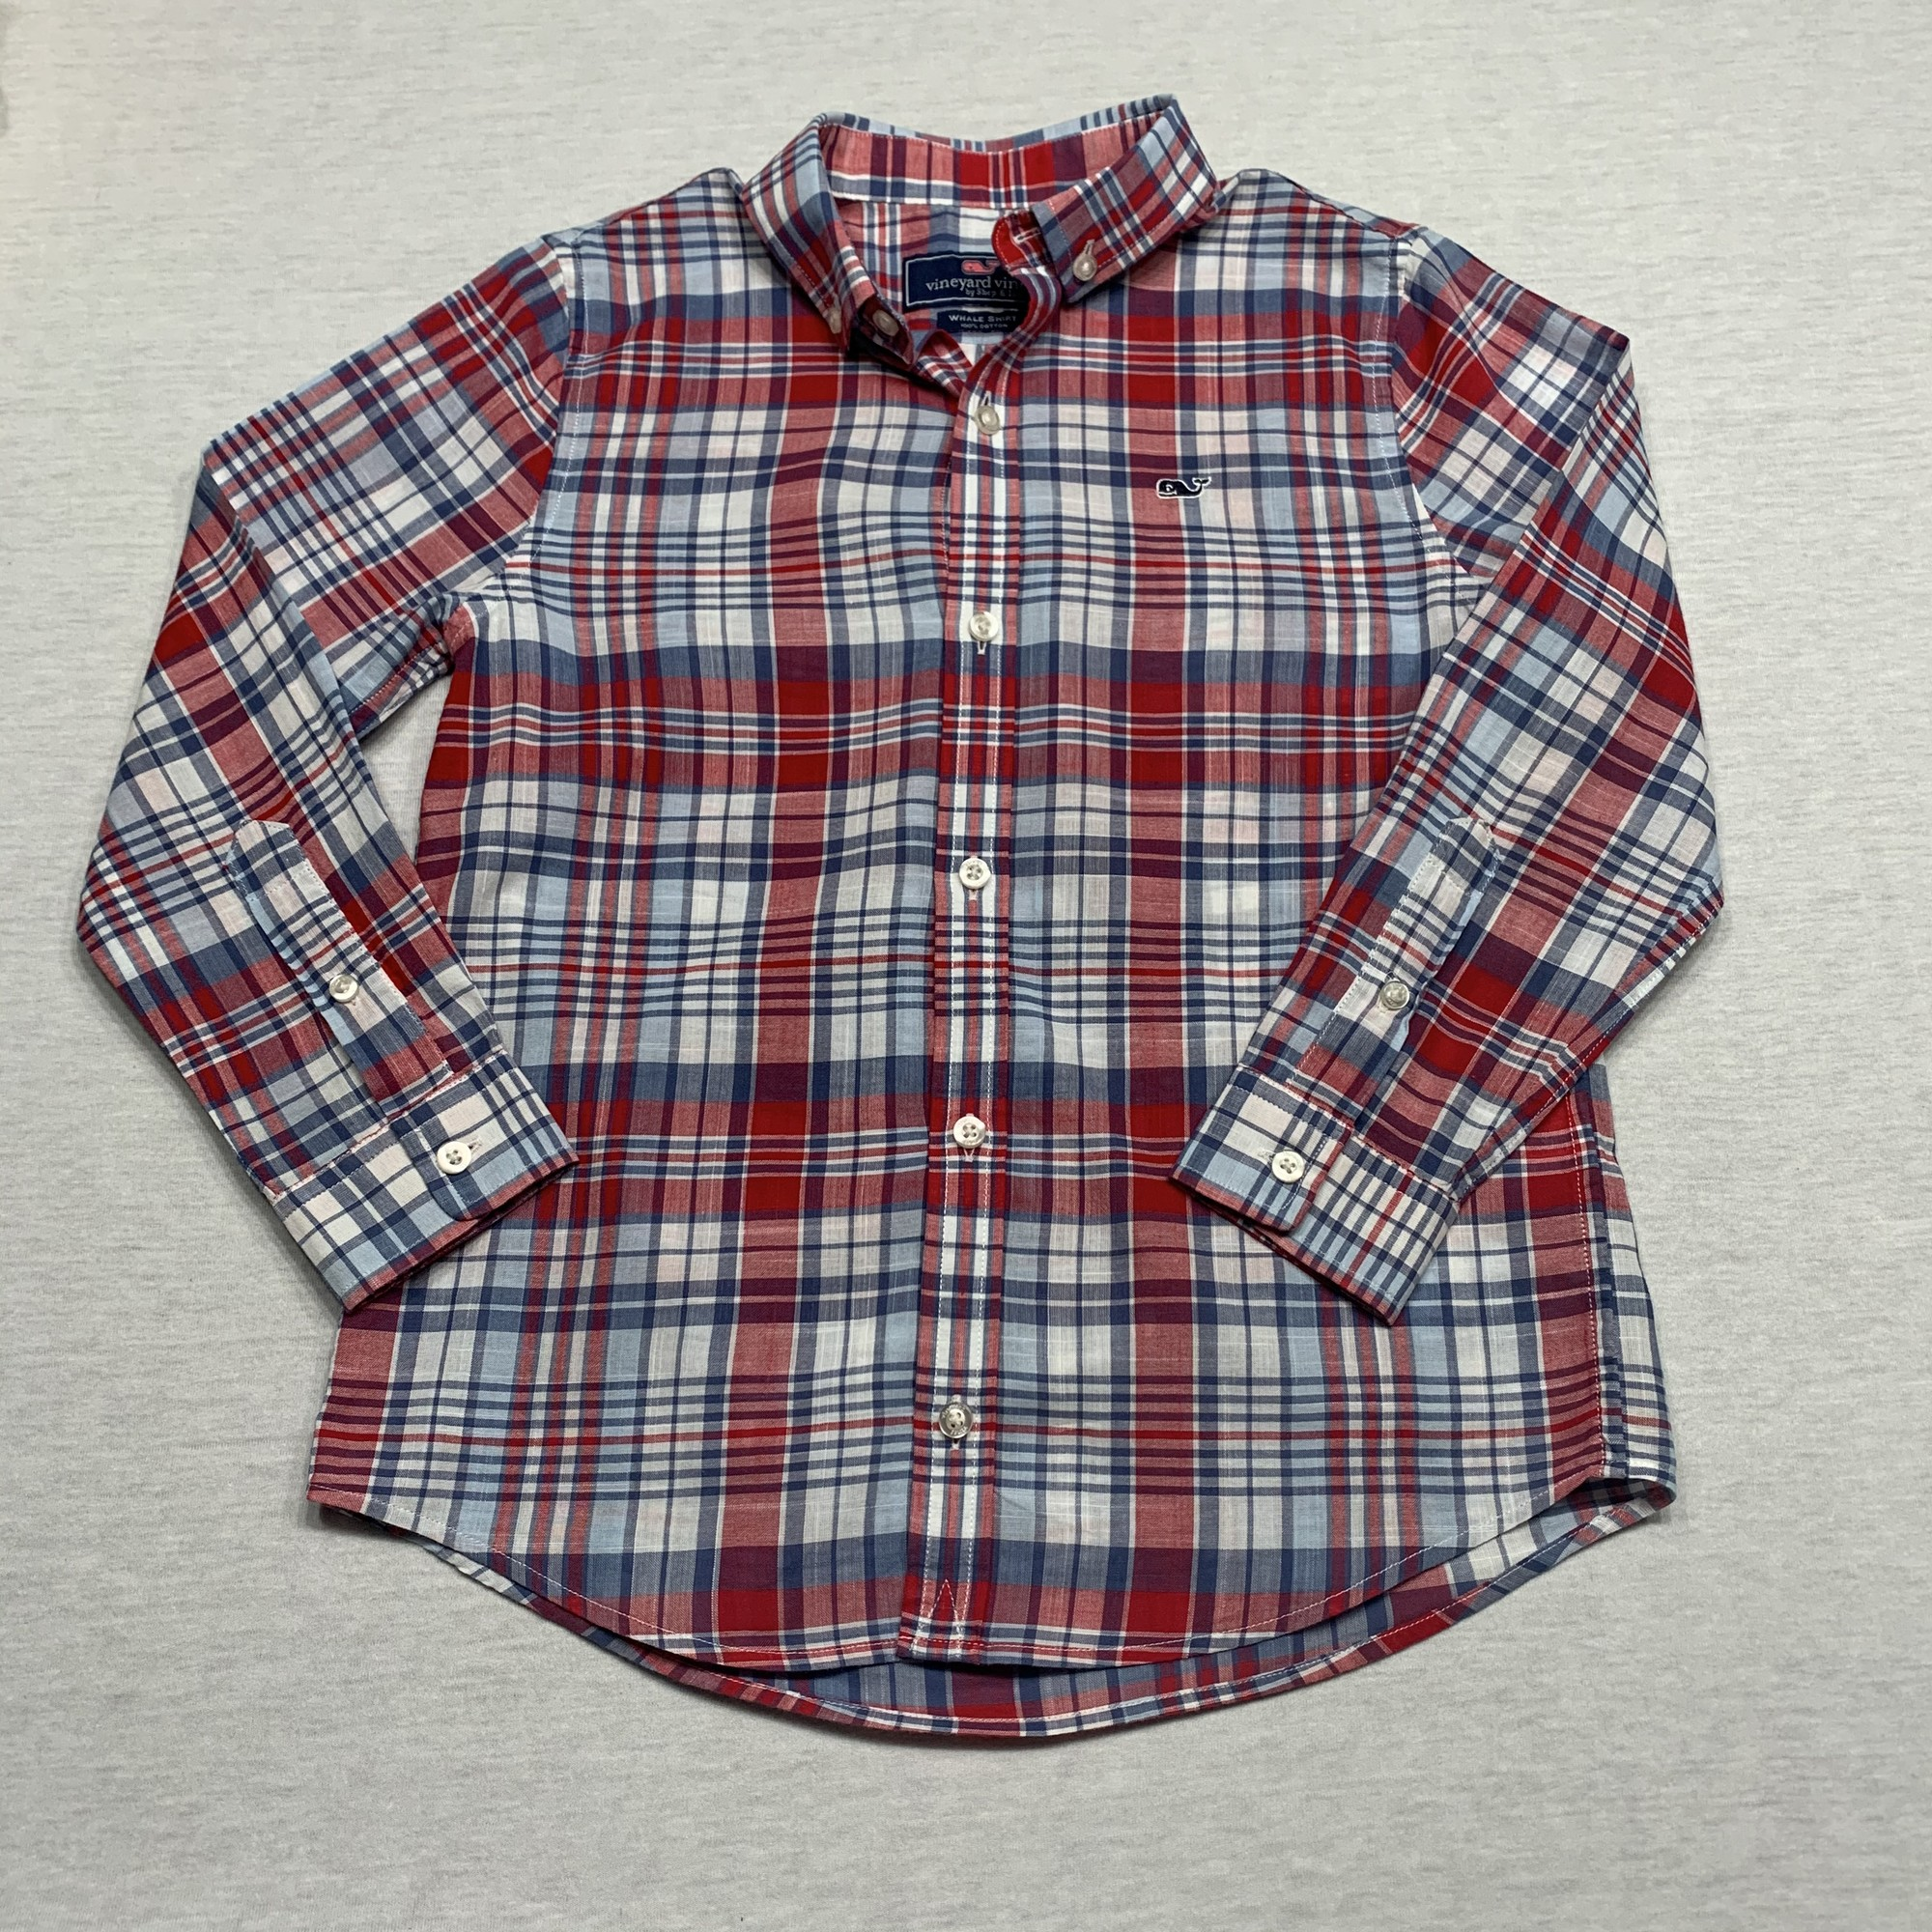 Madras plaid shirt with button down collar